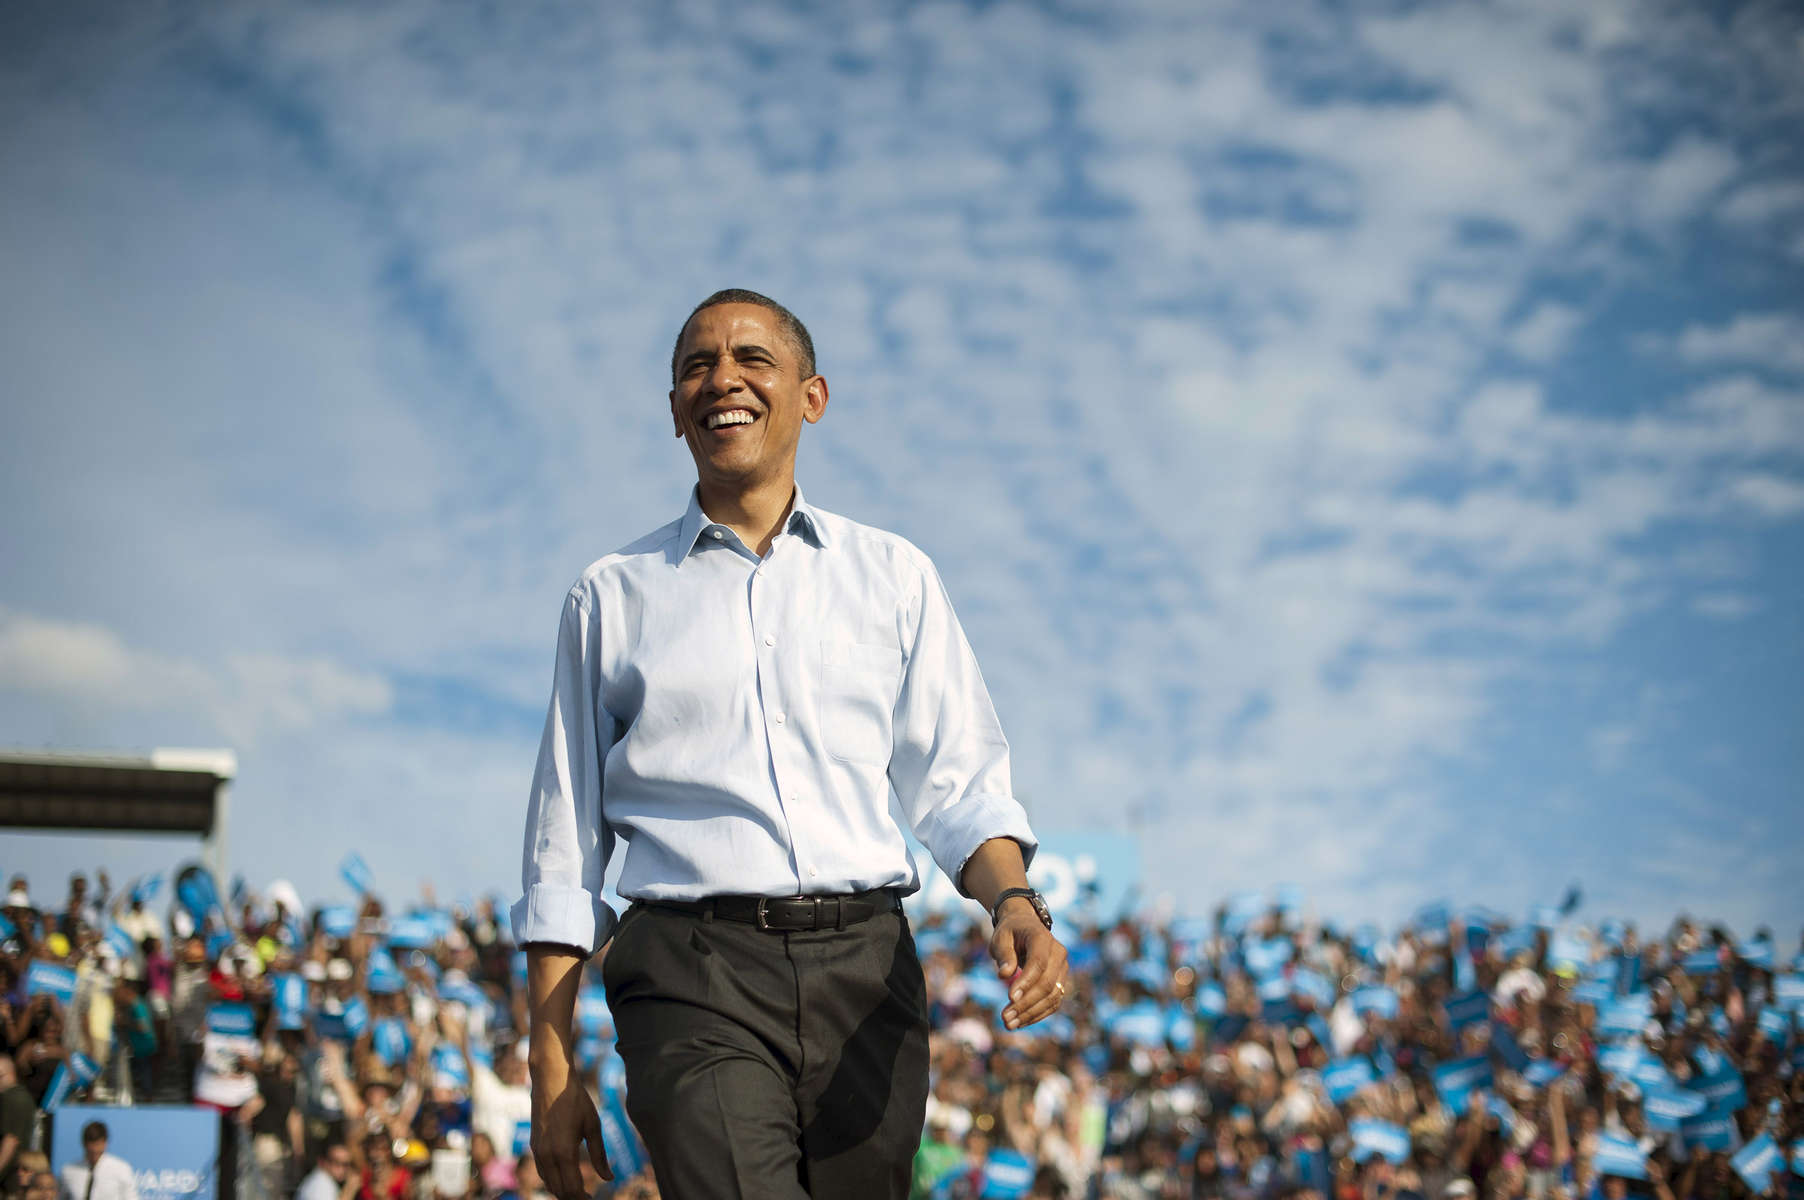 November 4, 2012 - Fort Lauderdale, FL:  President Barack Obama walks onstage at an event in Fort Lauderdale, FL a few days before the election. (Scout Tufankjian for Obama for America/Polaris)